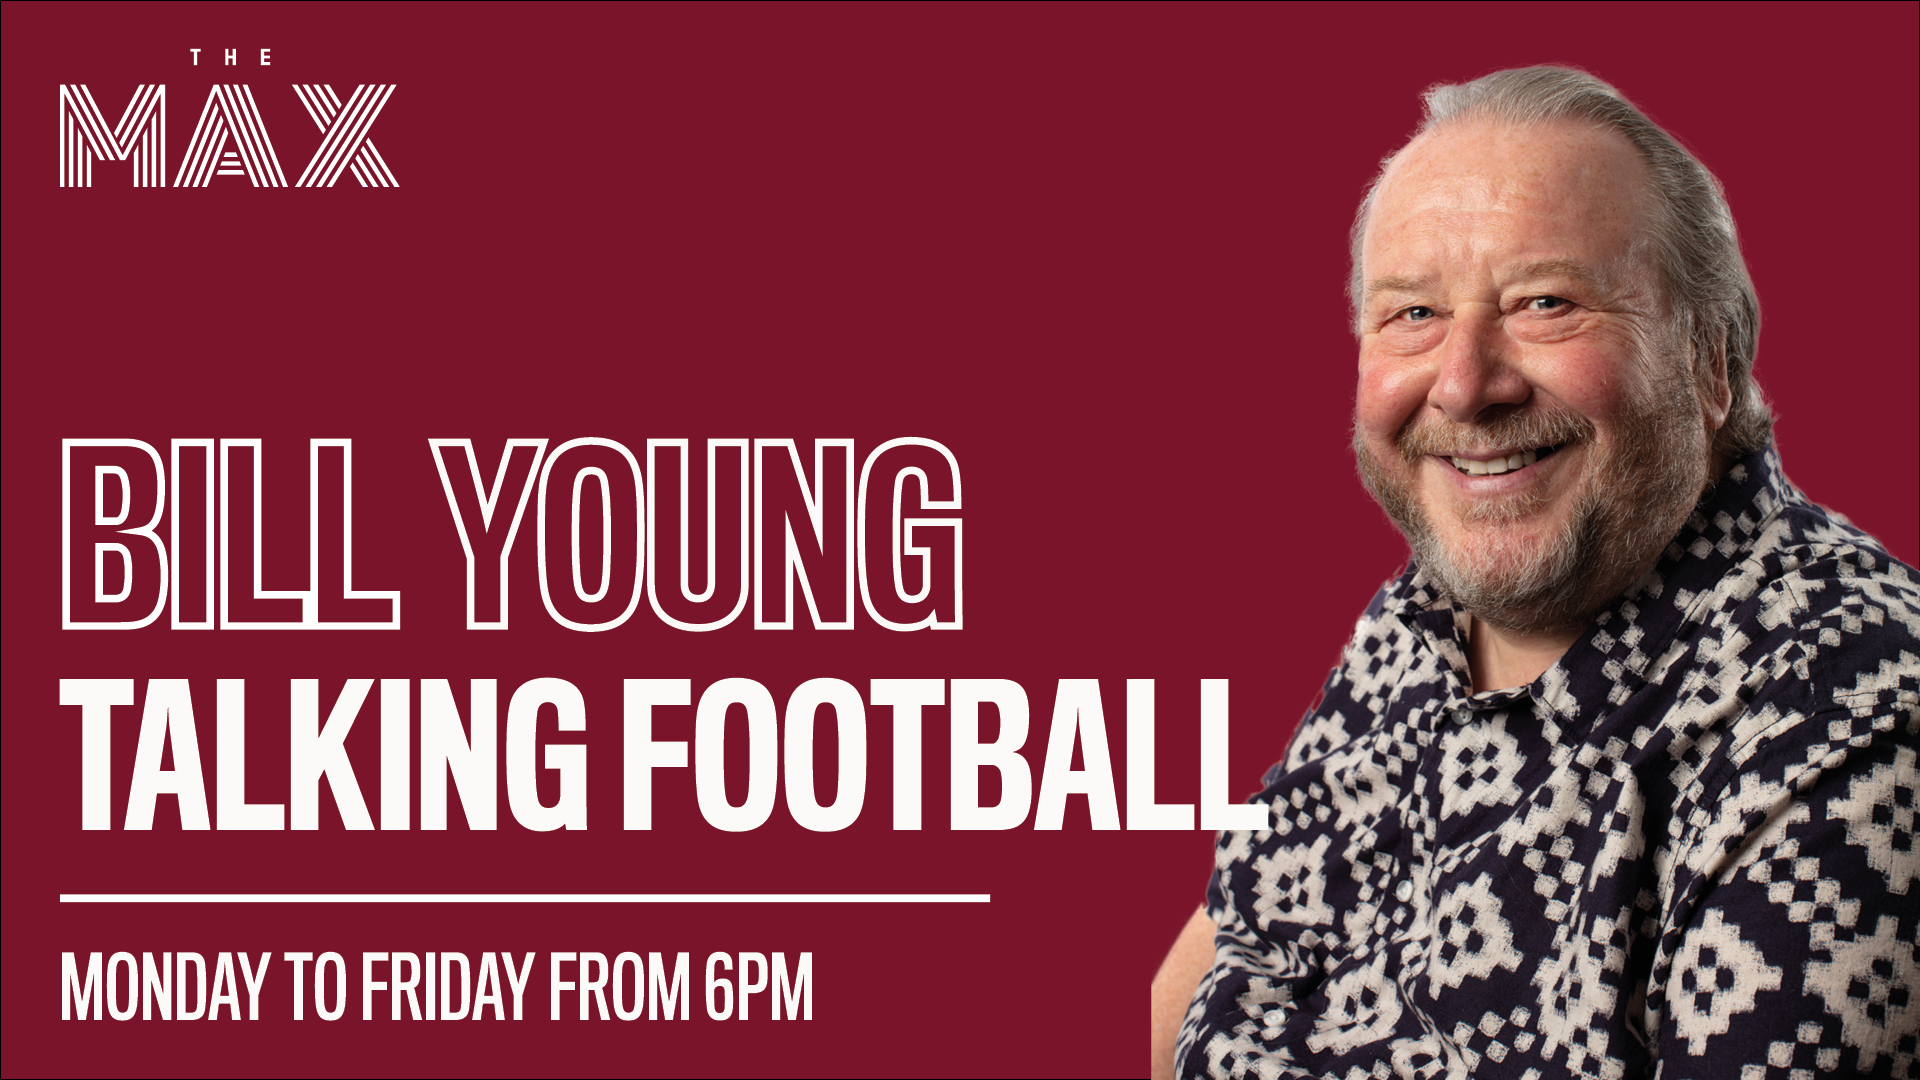 Talking Football with Bill Young - Thursday 6th of August - Episode 4